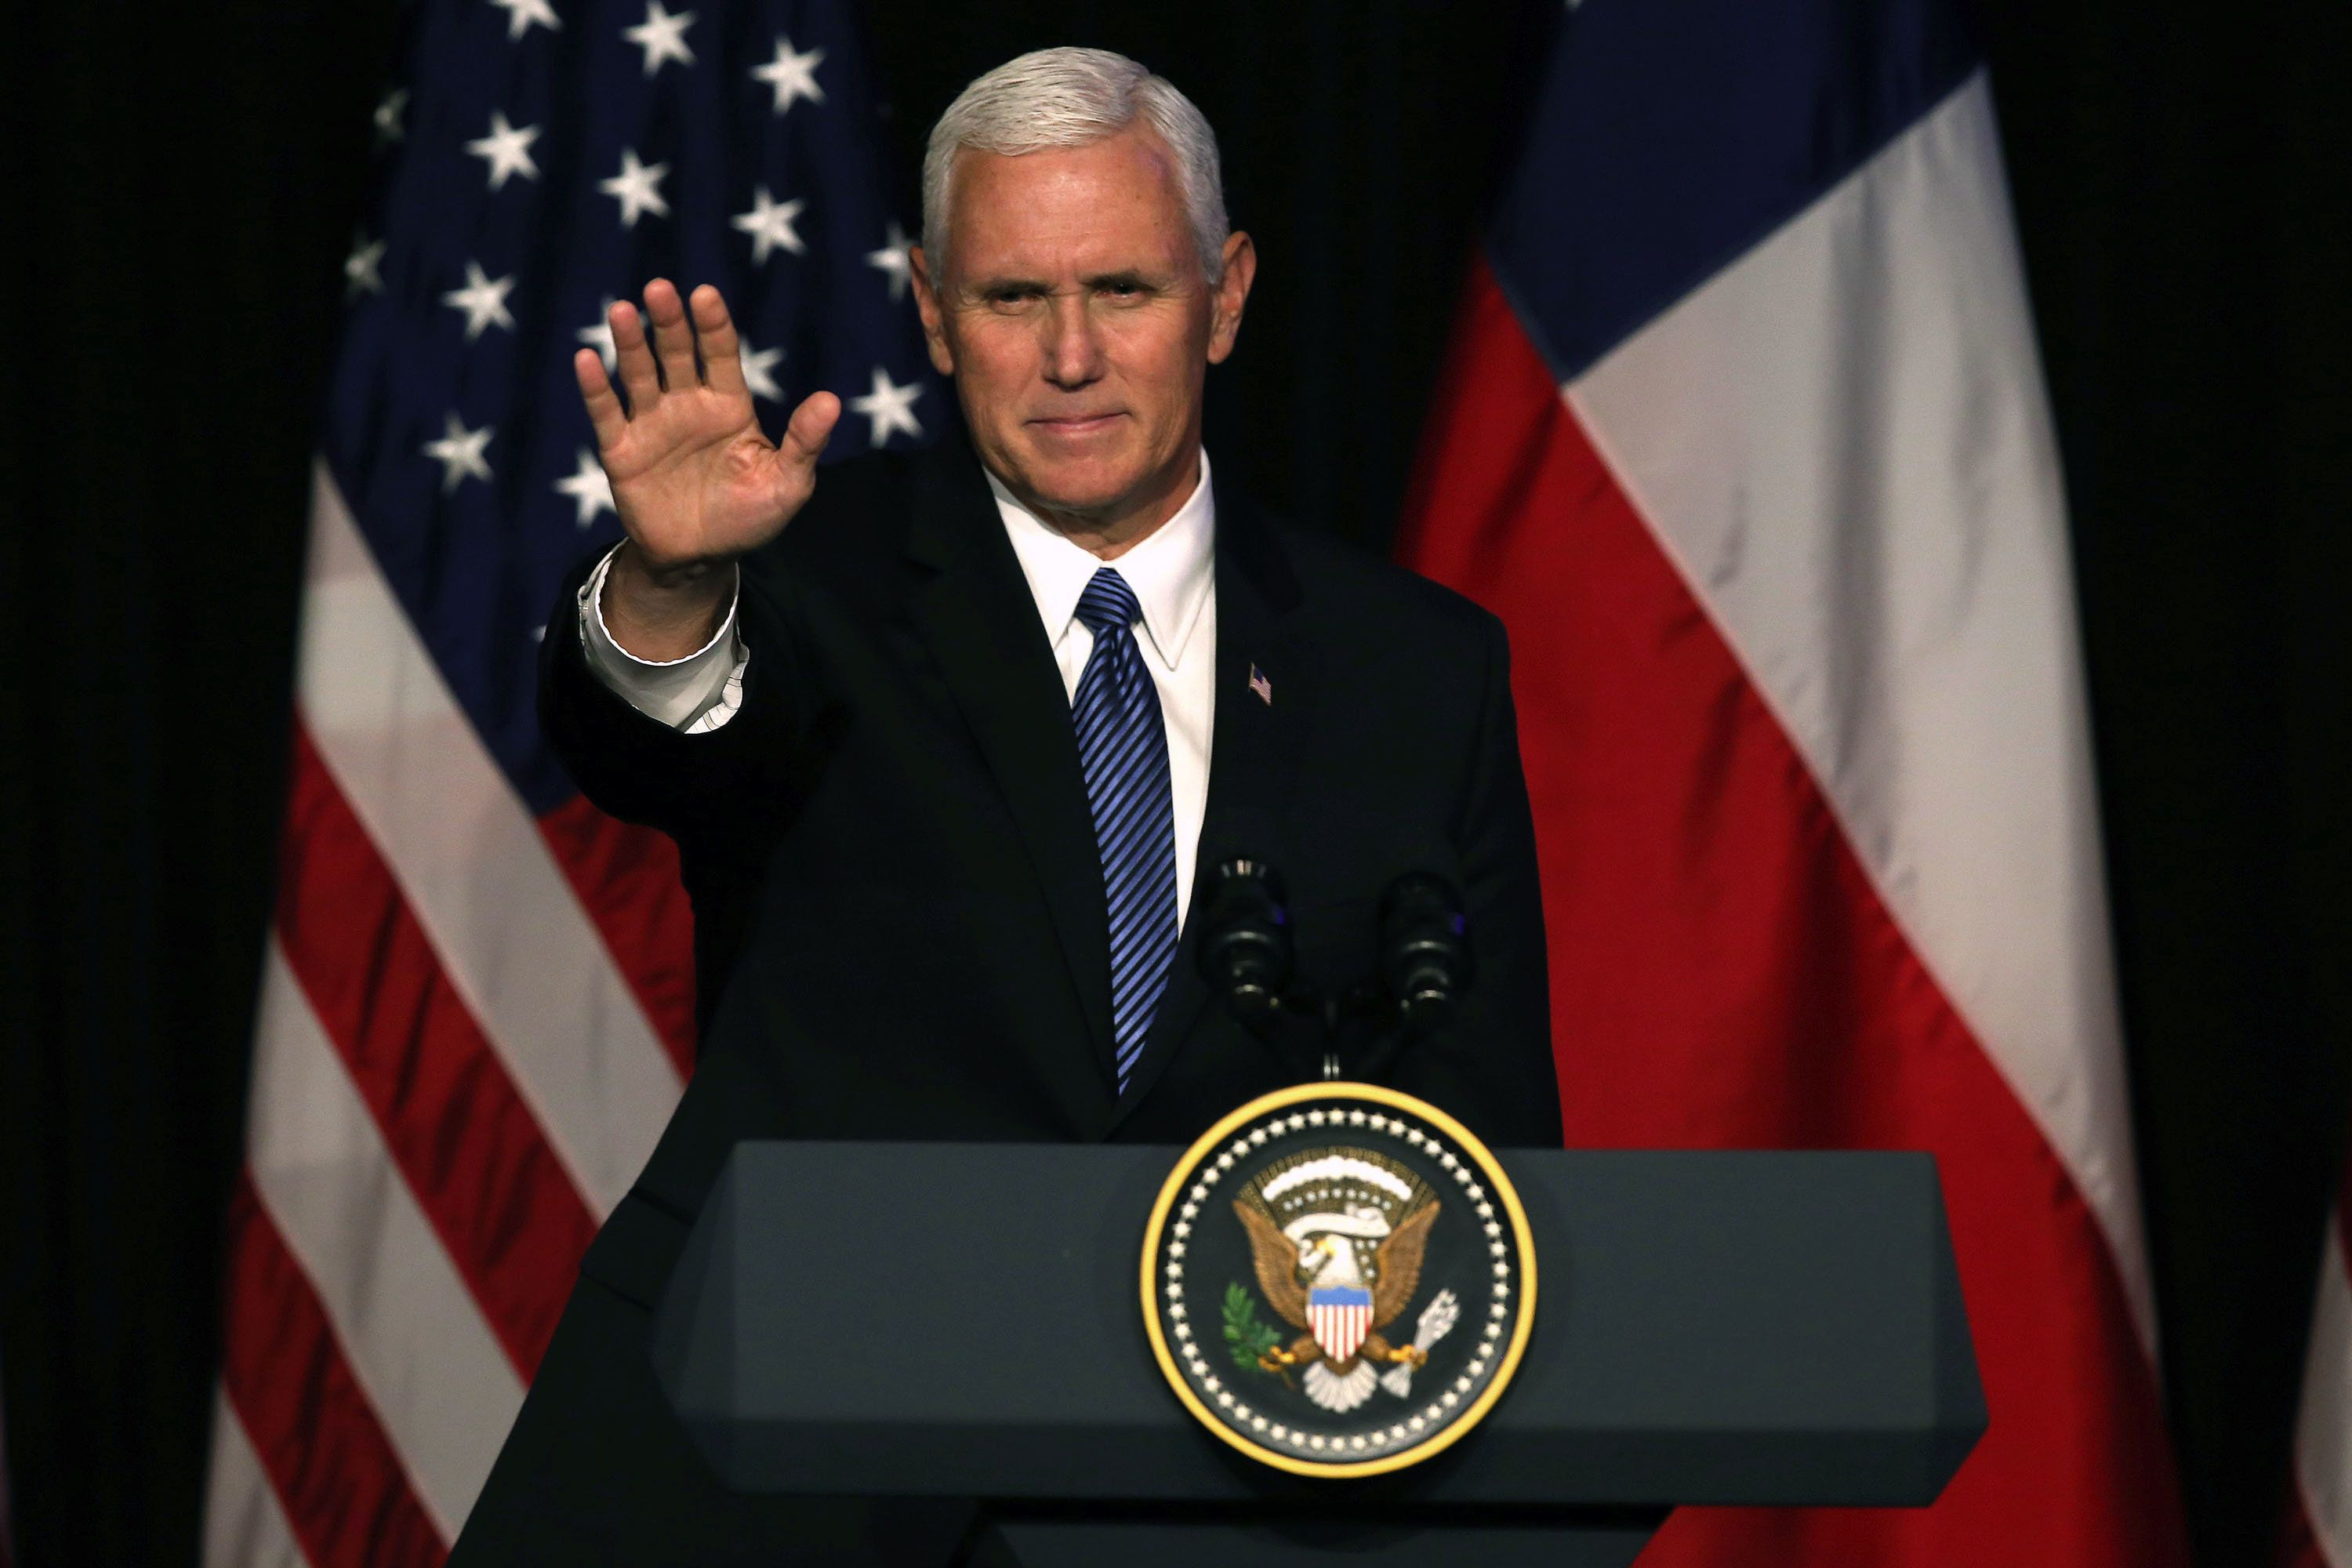 Vice President of the United States, Mike Pence, gestures as he delivers a speech during a business dinner in Santiago, on August 16, 2017.  Pence arrives in Santiago to begin a two-day visit to Chile that is part of his first tour in Latin America. / AFP PHOTO / CLAUDIO REYES        (Photo credit should read CLAUDIO REYES/AFP/Getty Images)